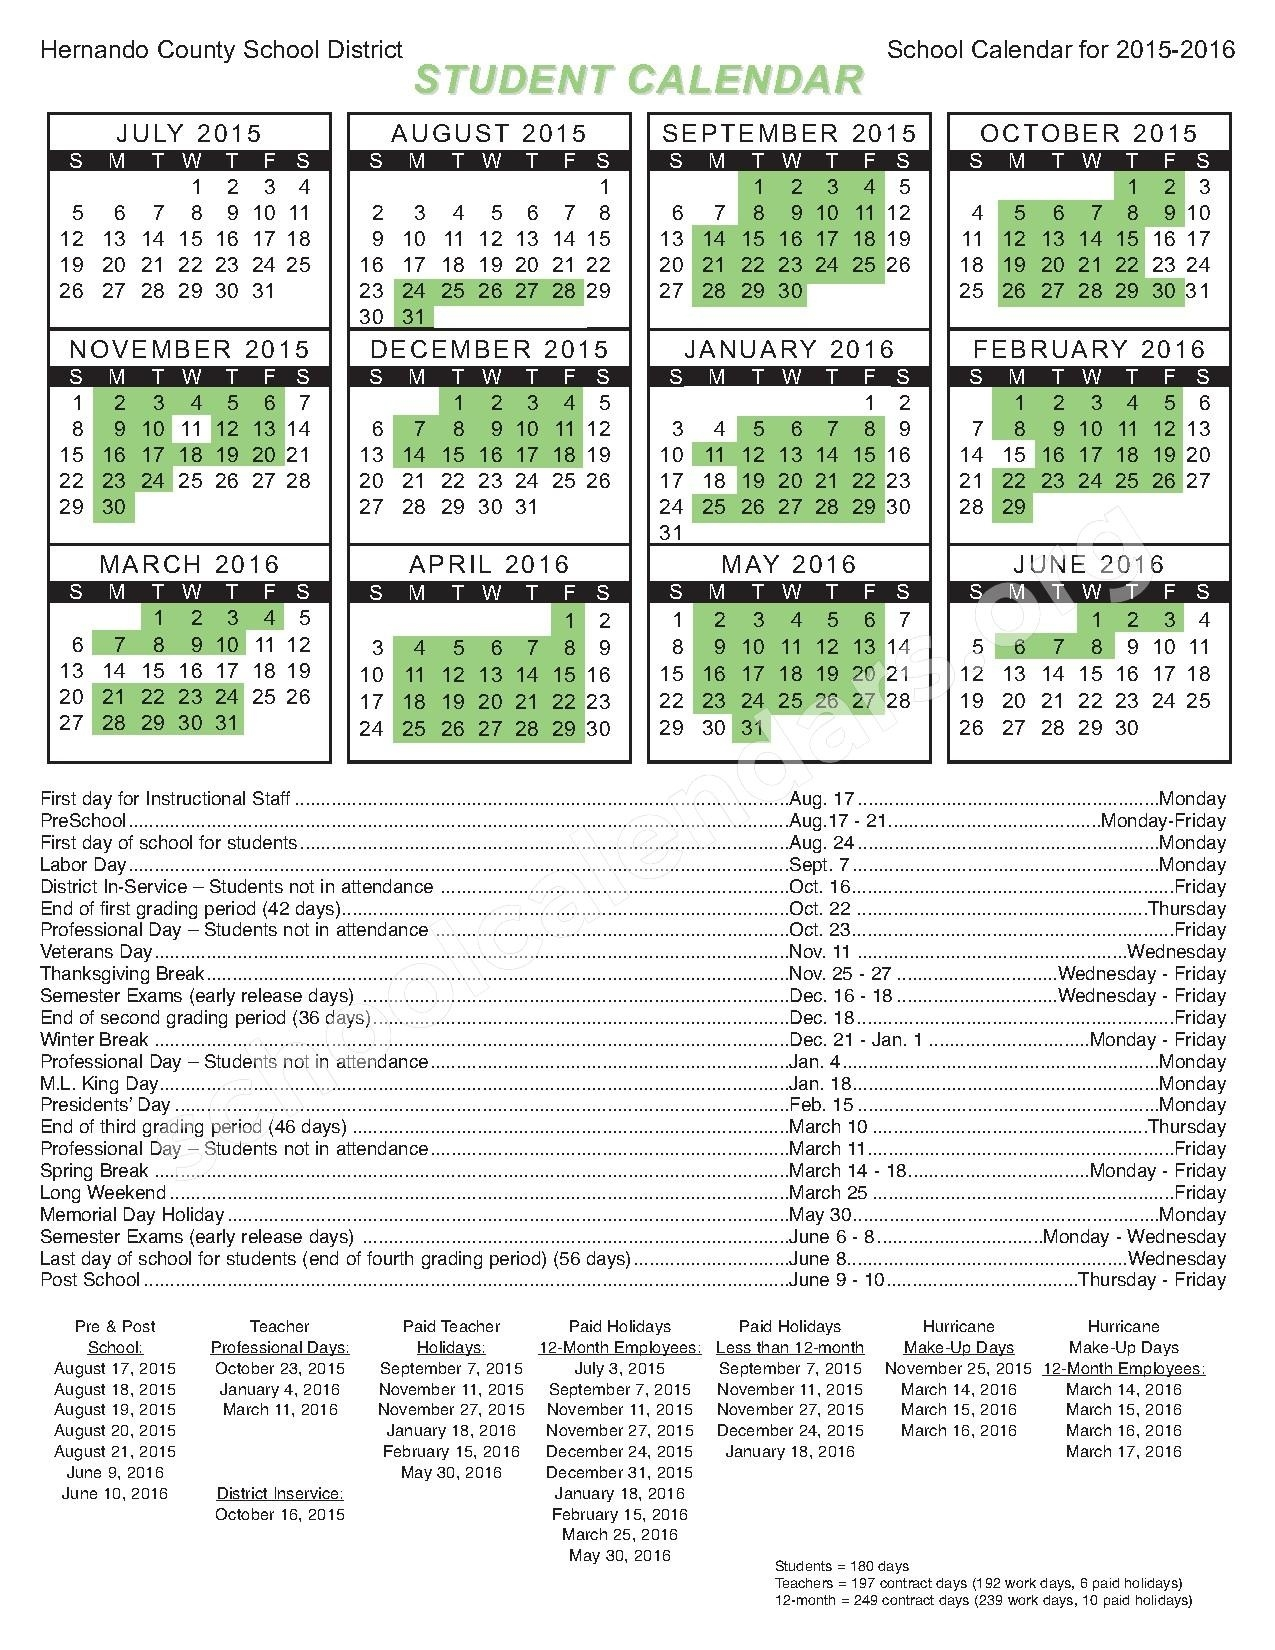 Hernando Country School Calender Related Keywords & Suggestions_School Calendar Hernando County